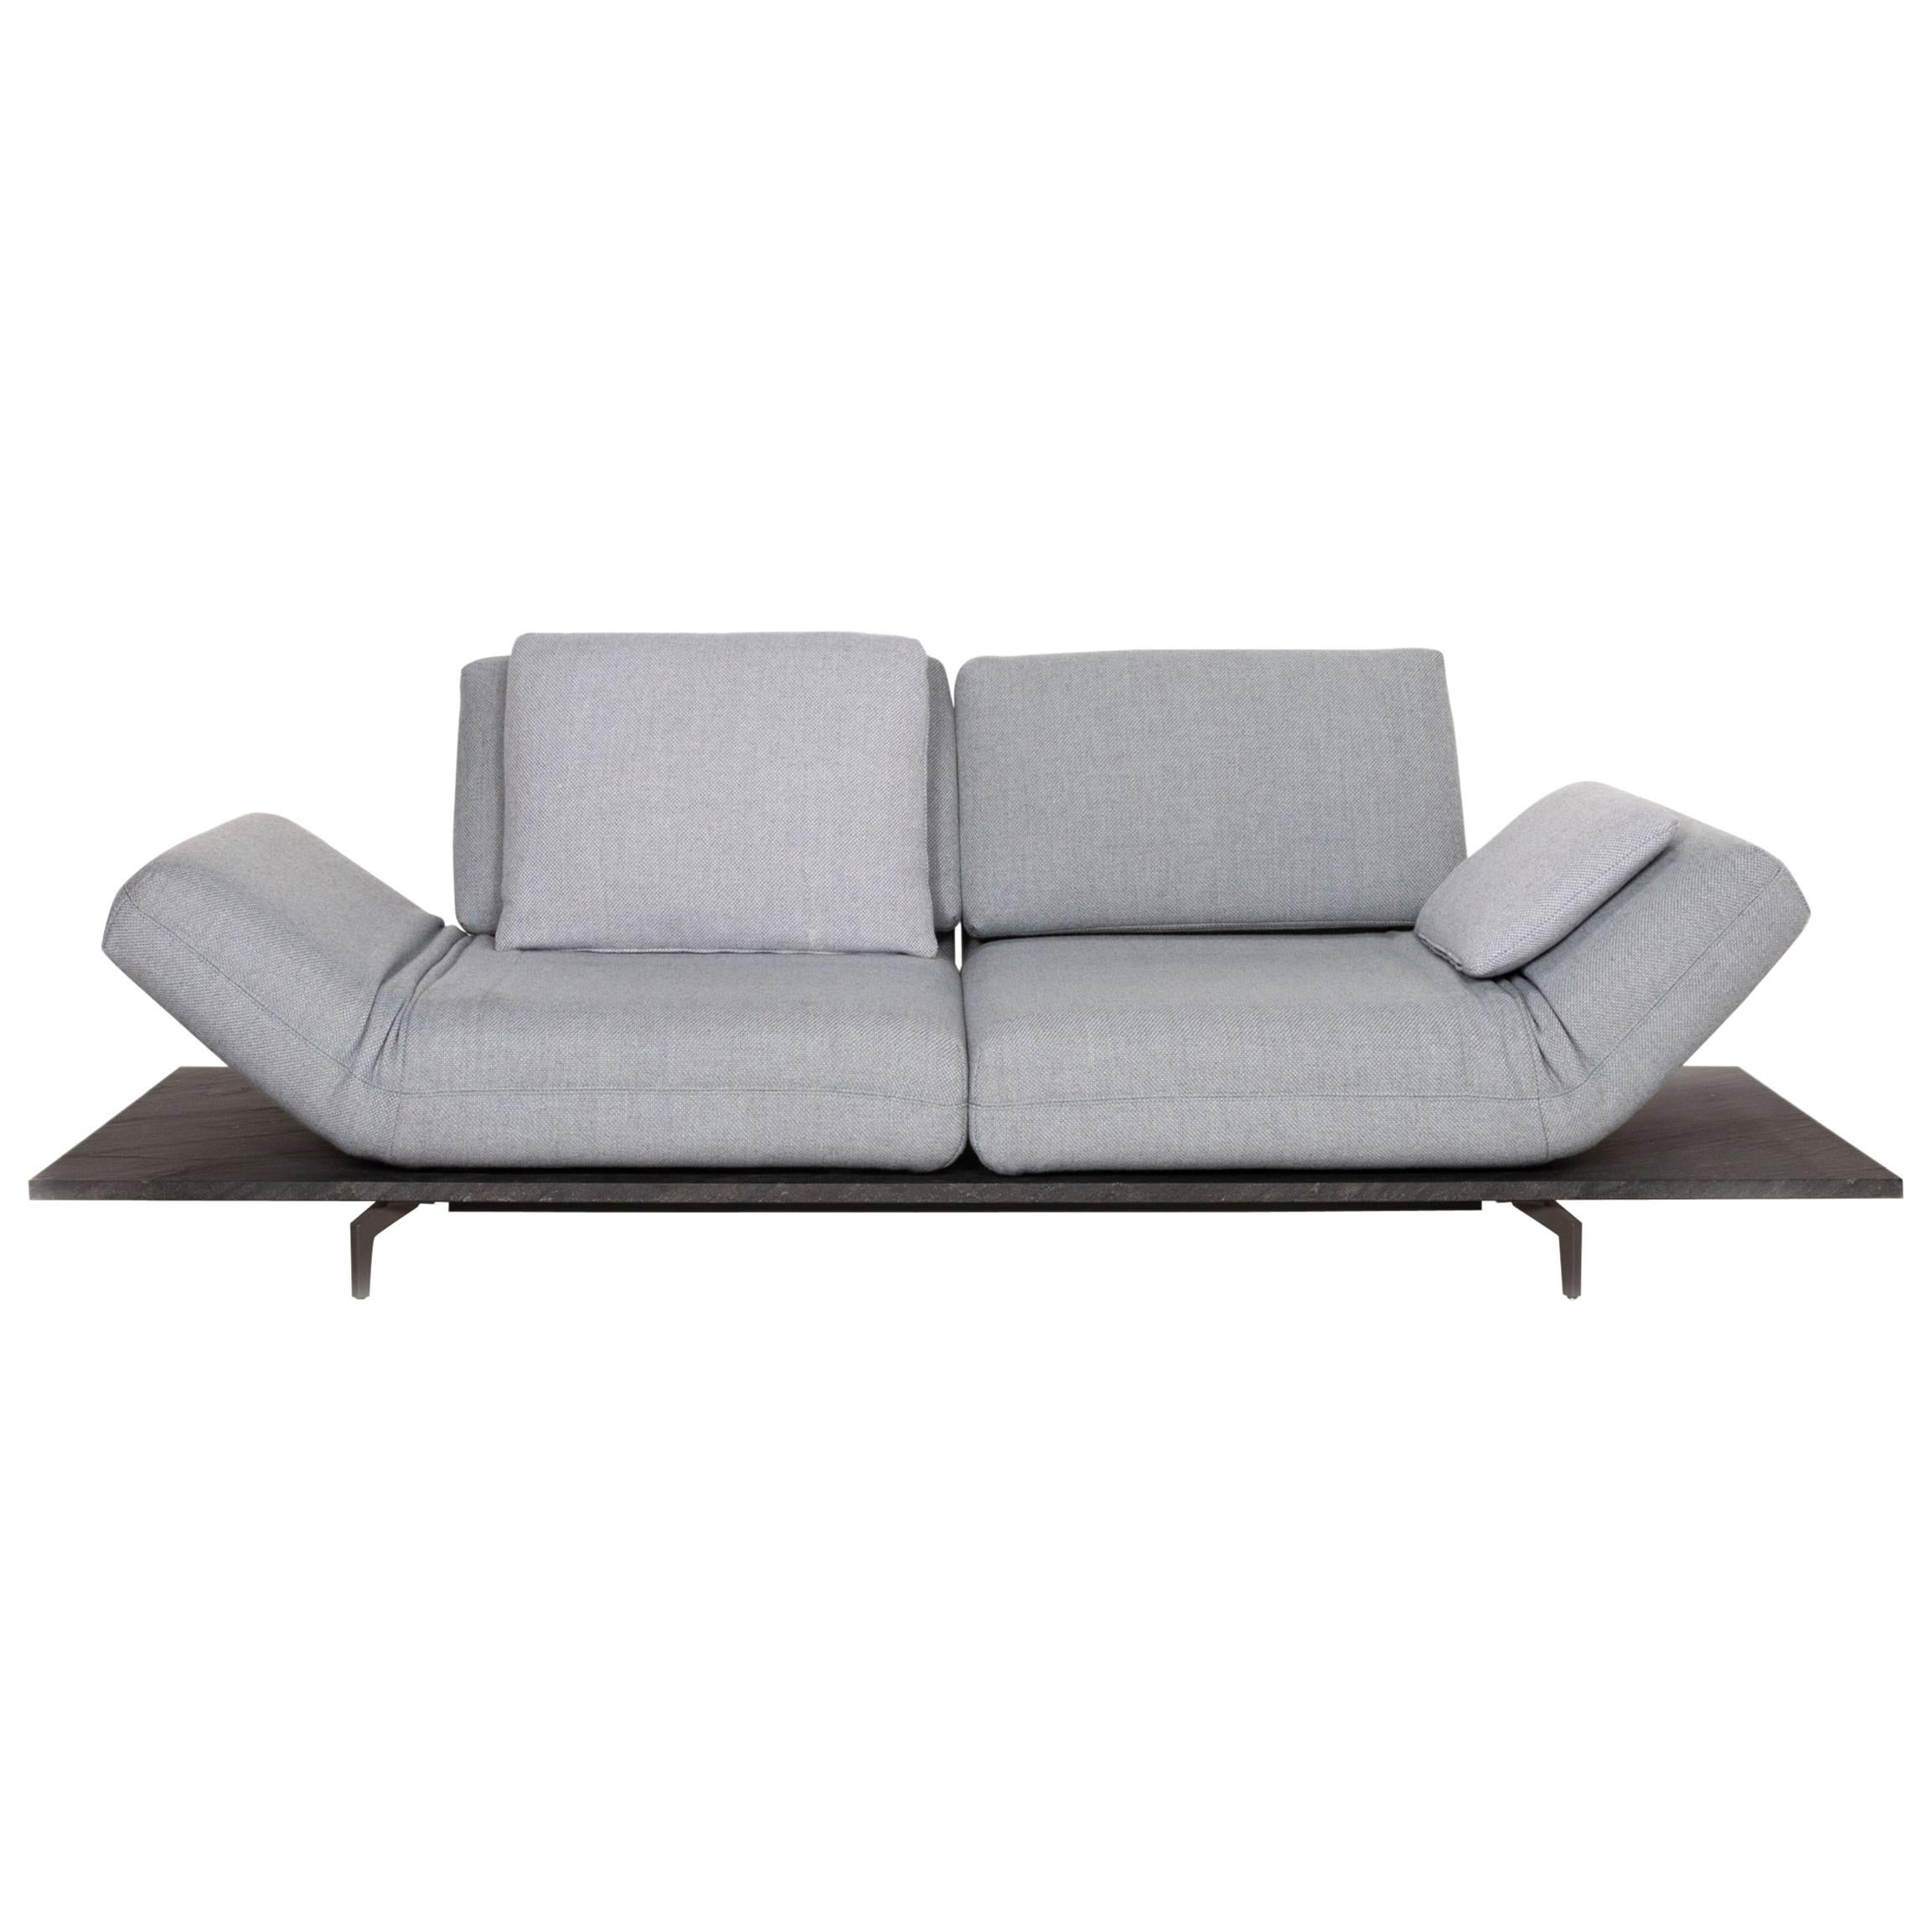 Rolf Benz Aura Fabric Sofa Blue Gray Two-Seater Function Couch